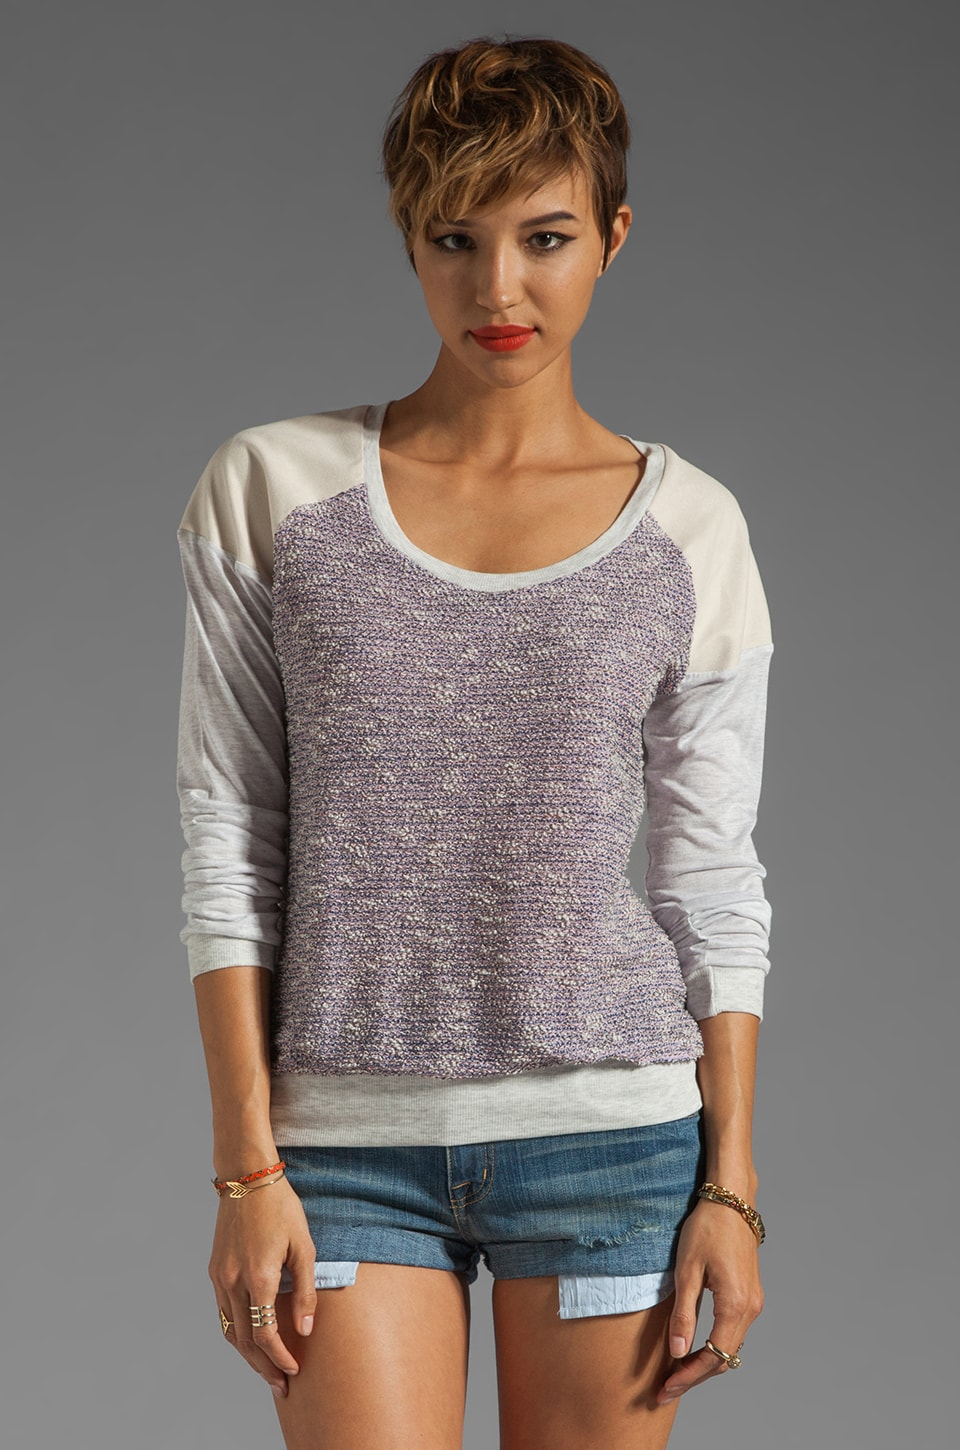 Heather Baseball Tee in Orchid